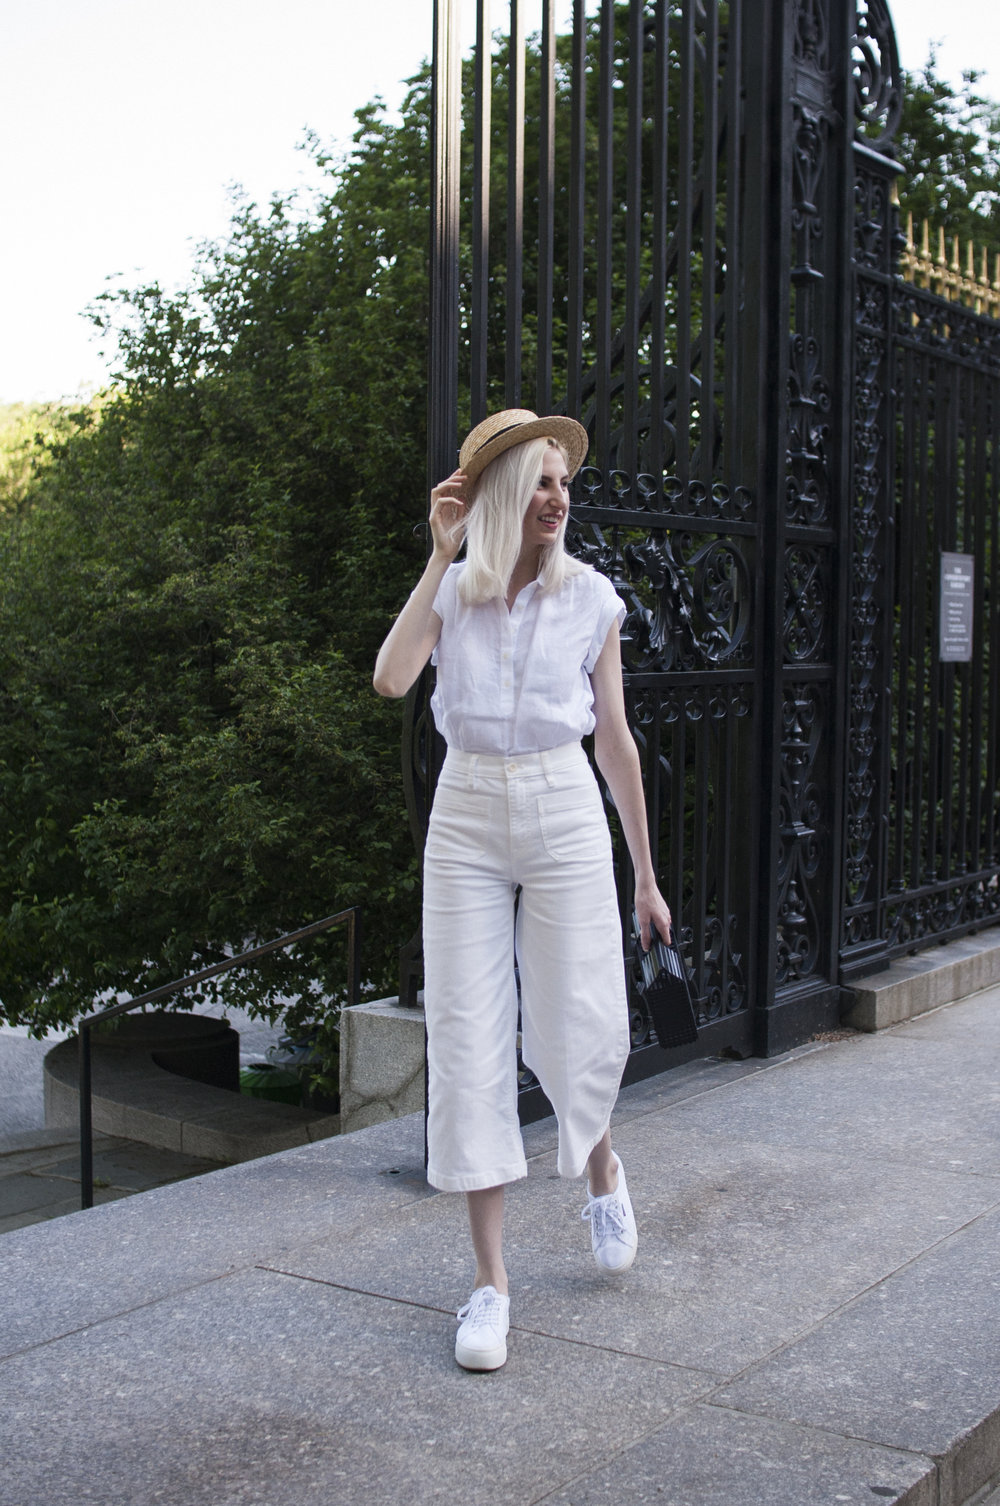 all white outfit, italian riviera outfit, hamptons outfit, straw boater hat, cropped jeans look, wooden cutout handbag, cult gaia dupe, summer outfit ideas, spring outfit ideas, how to wear all white, conservatory gardens new york city,